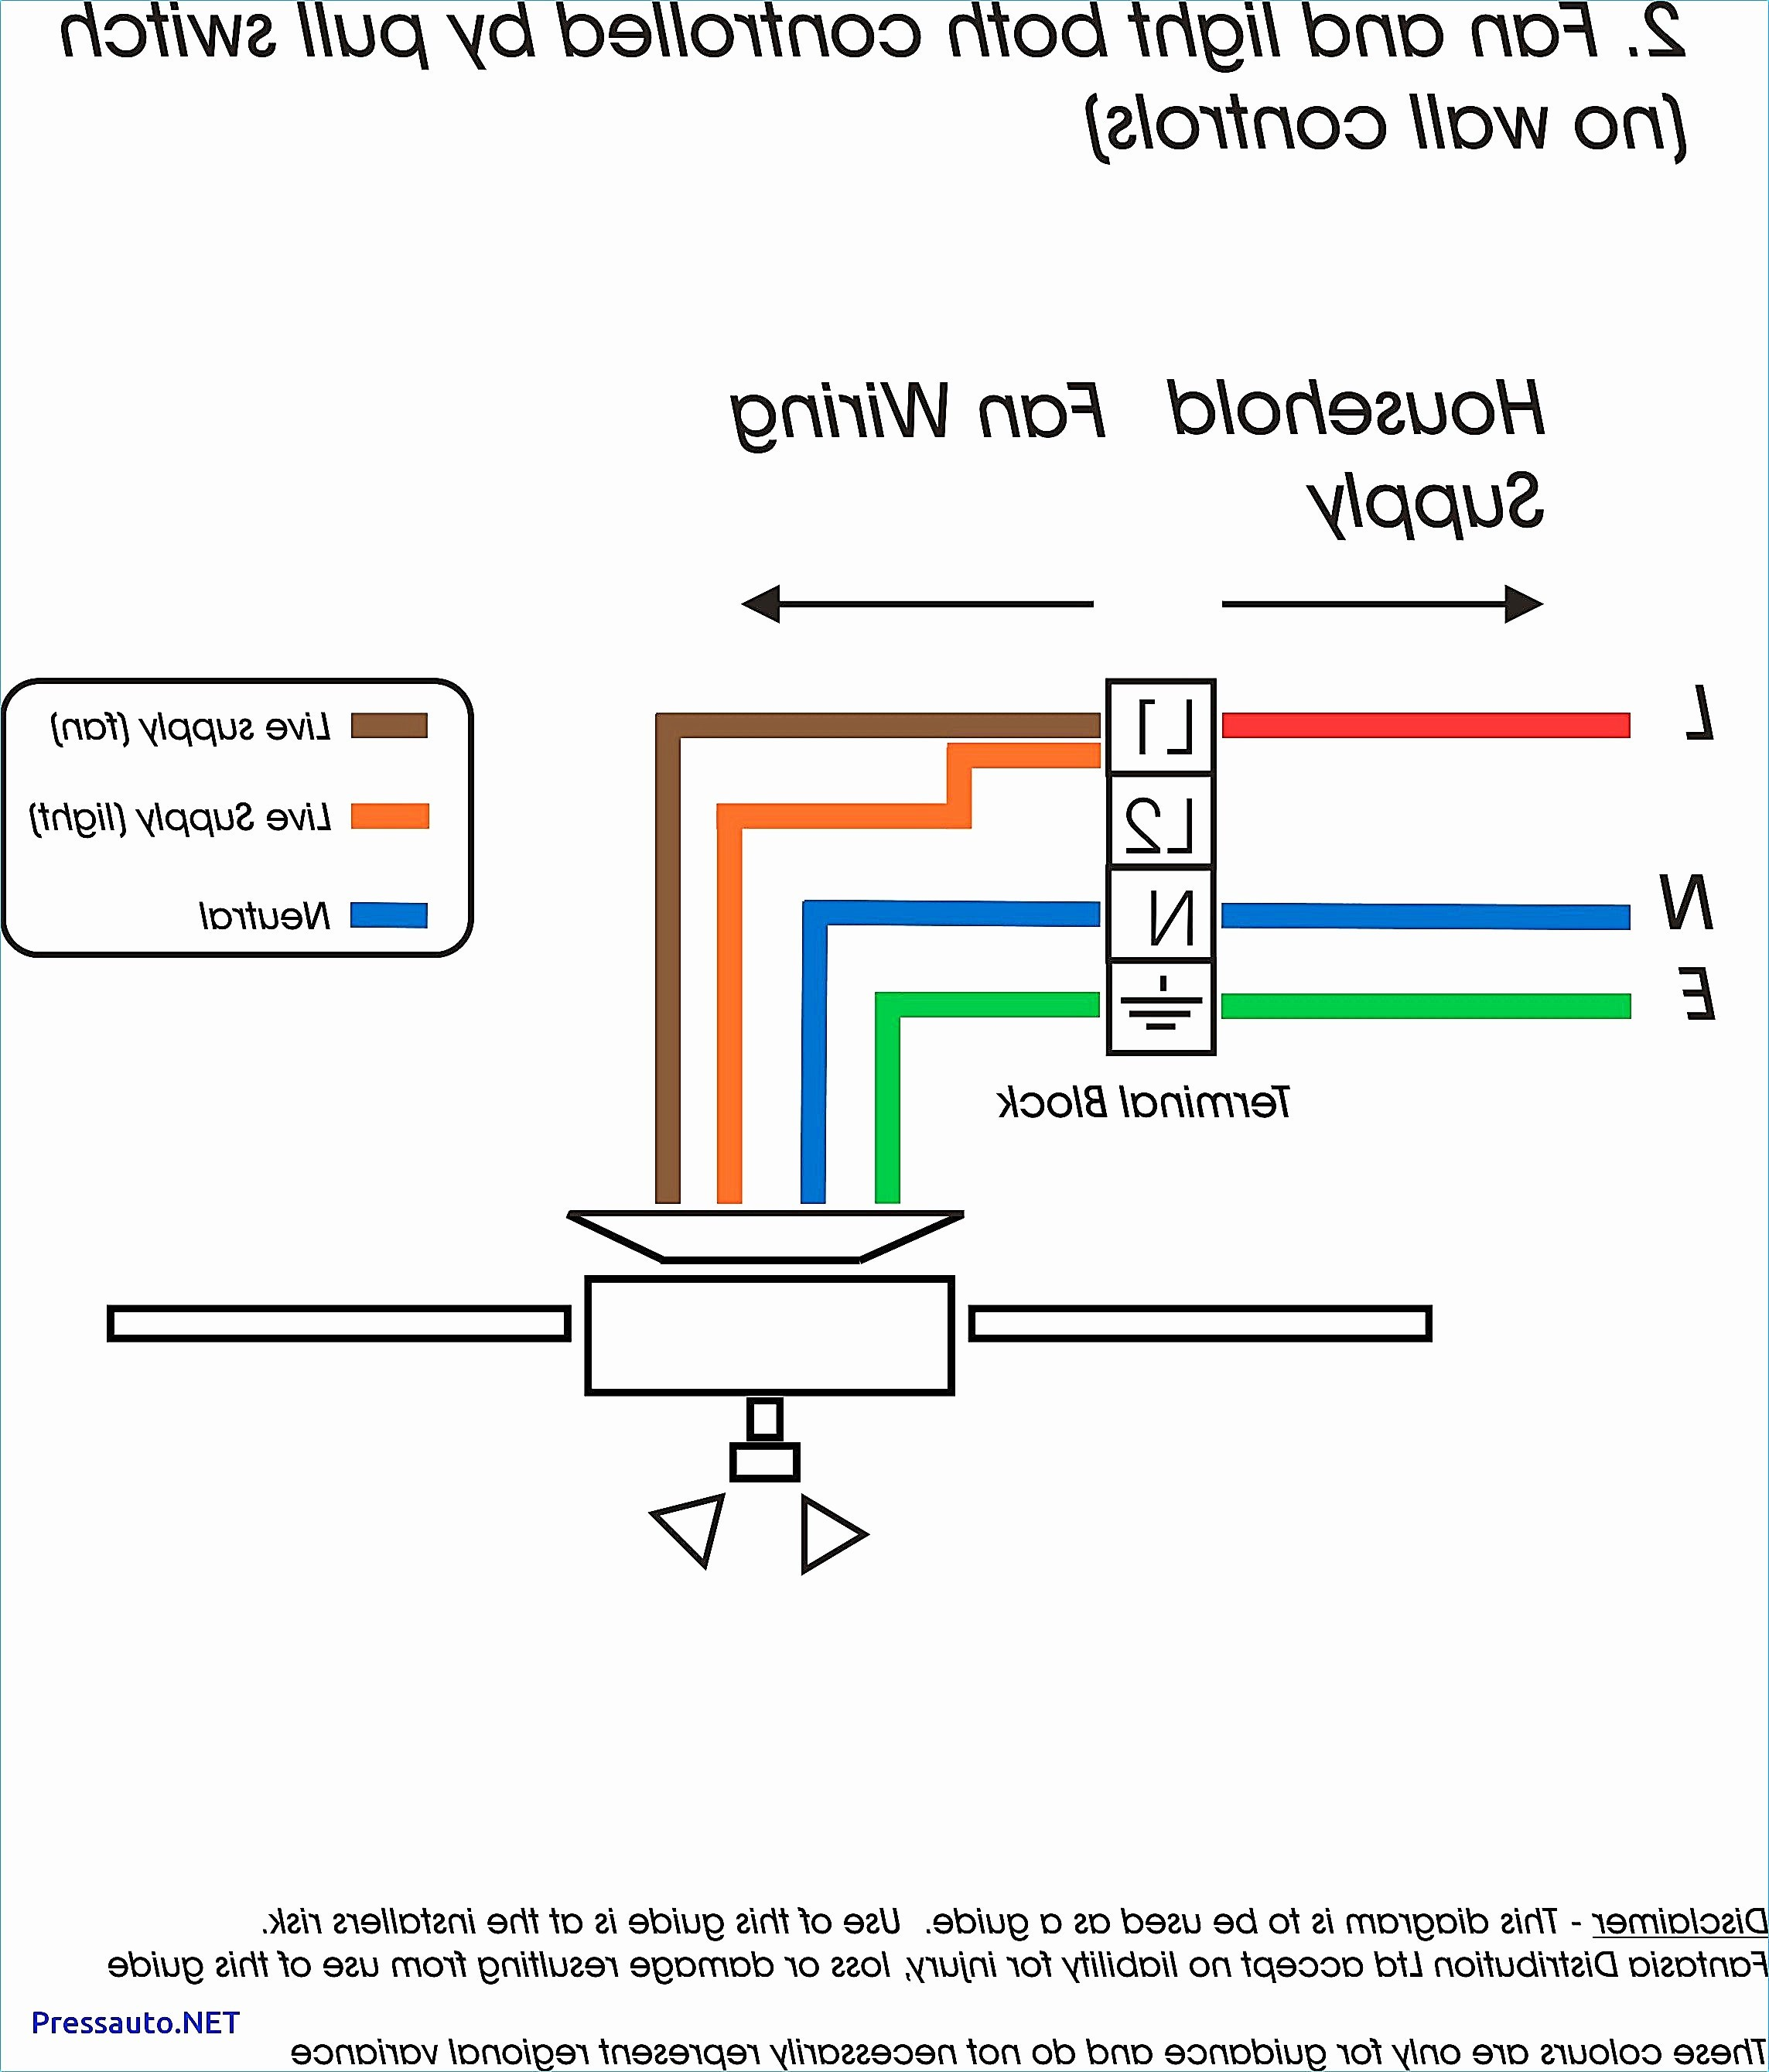 Wiring 2 lights on one switch new wiring diagram image how to wire multiple lights e circuit diagram elegant dual light switch wiring amp add asfbconference2016 Images